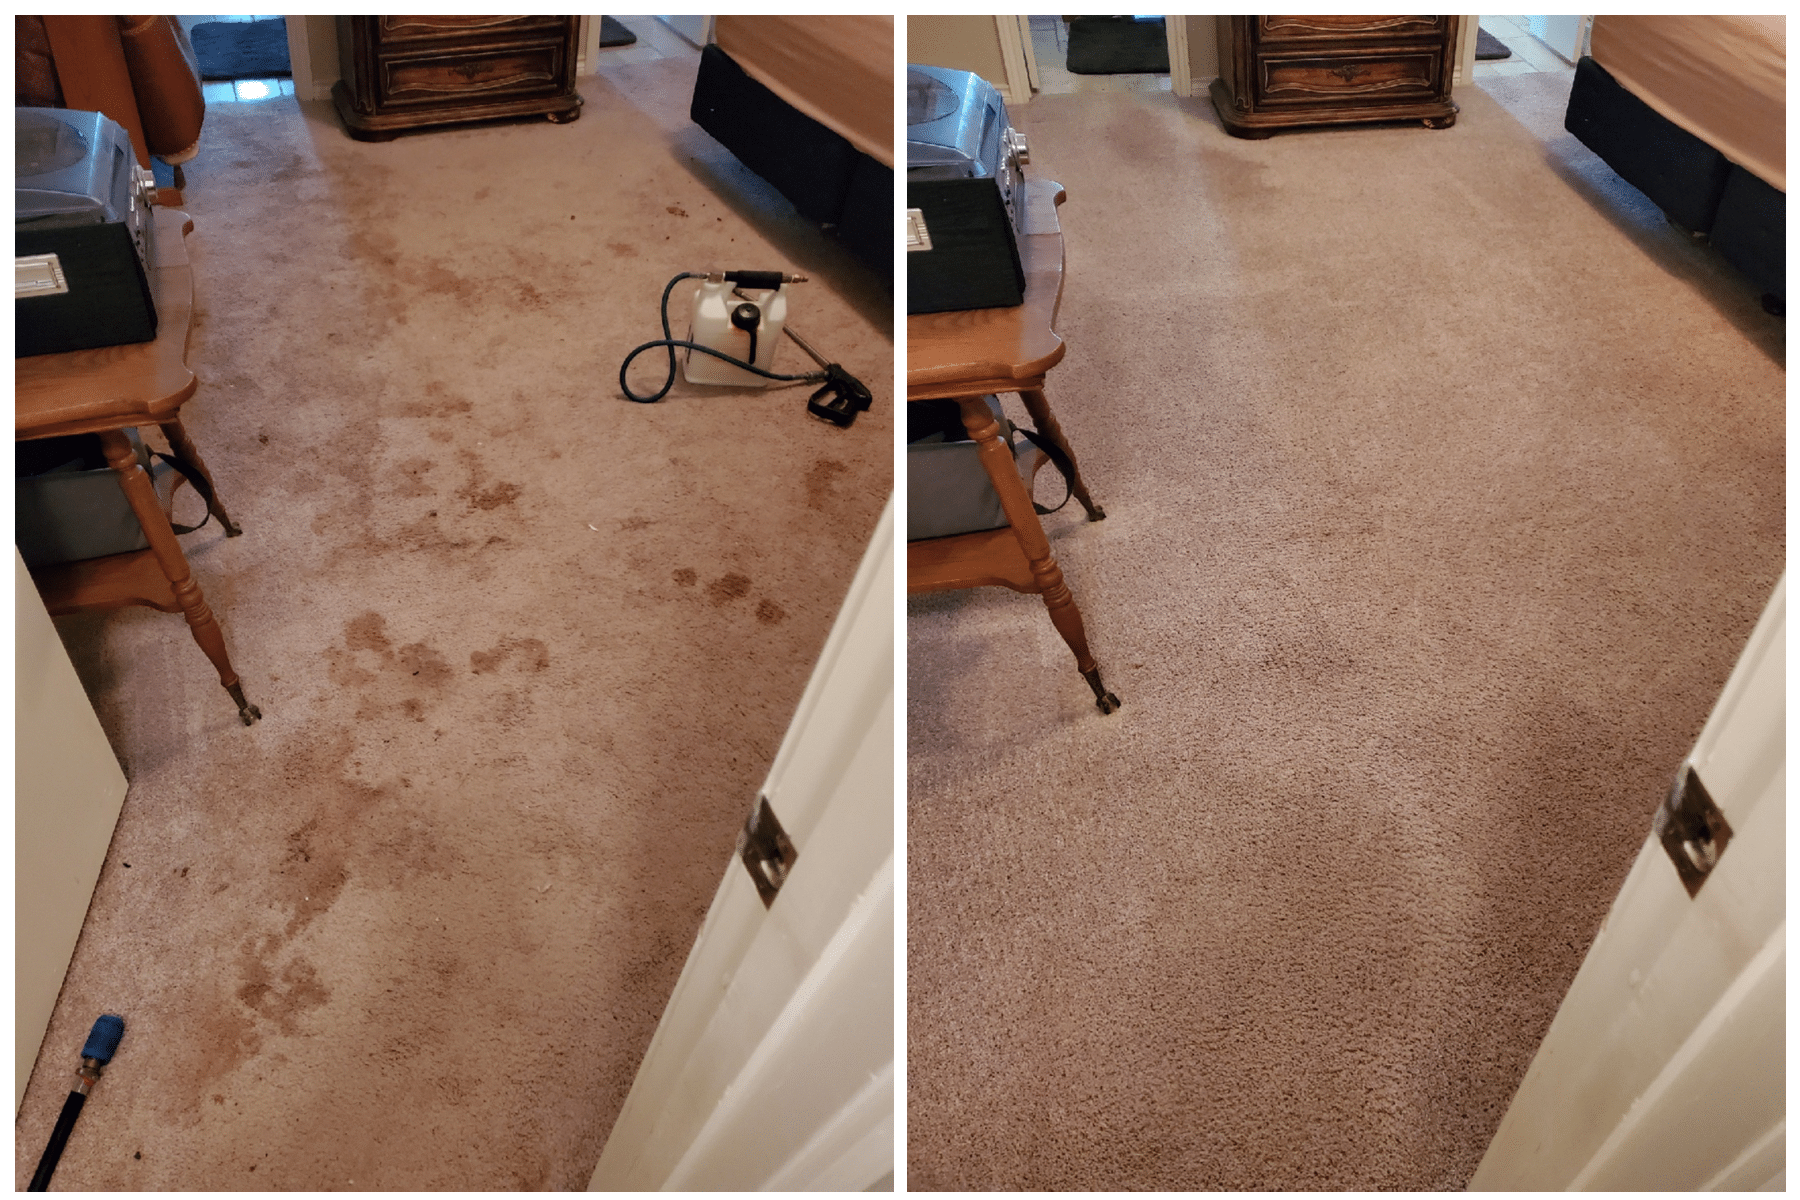 Carpet cleaning blood removal in Dallas, TX